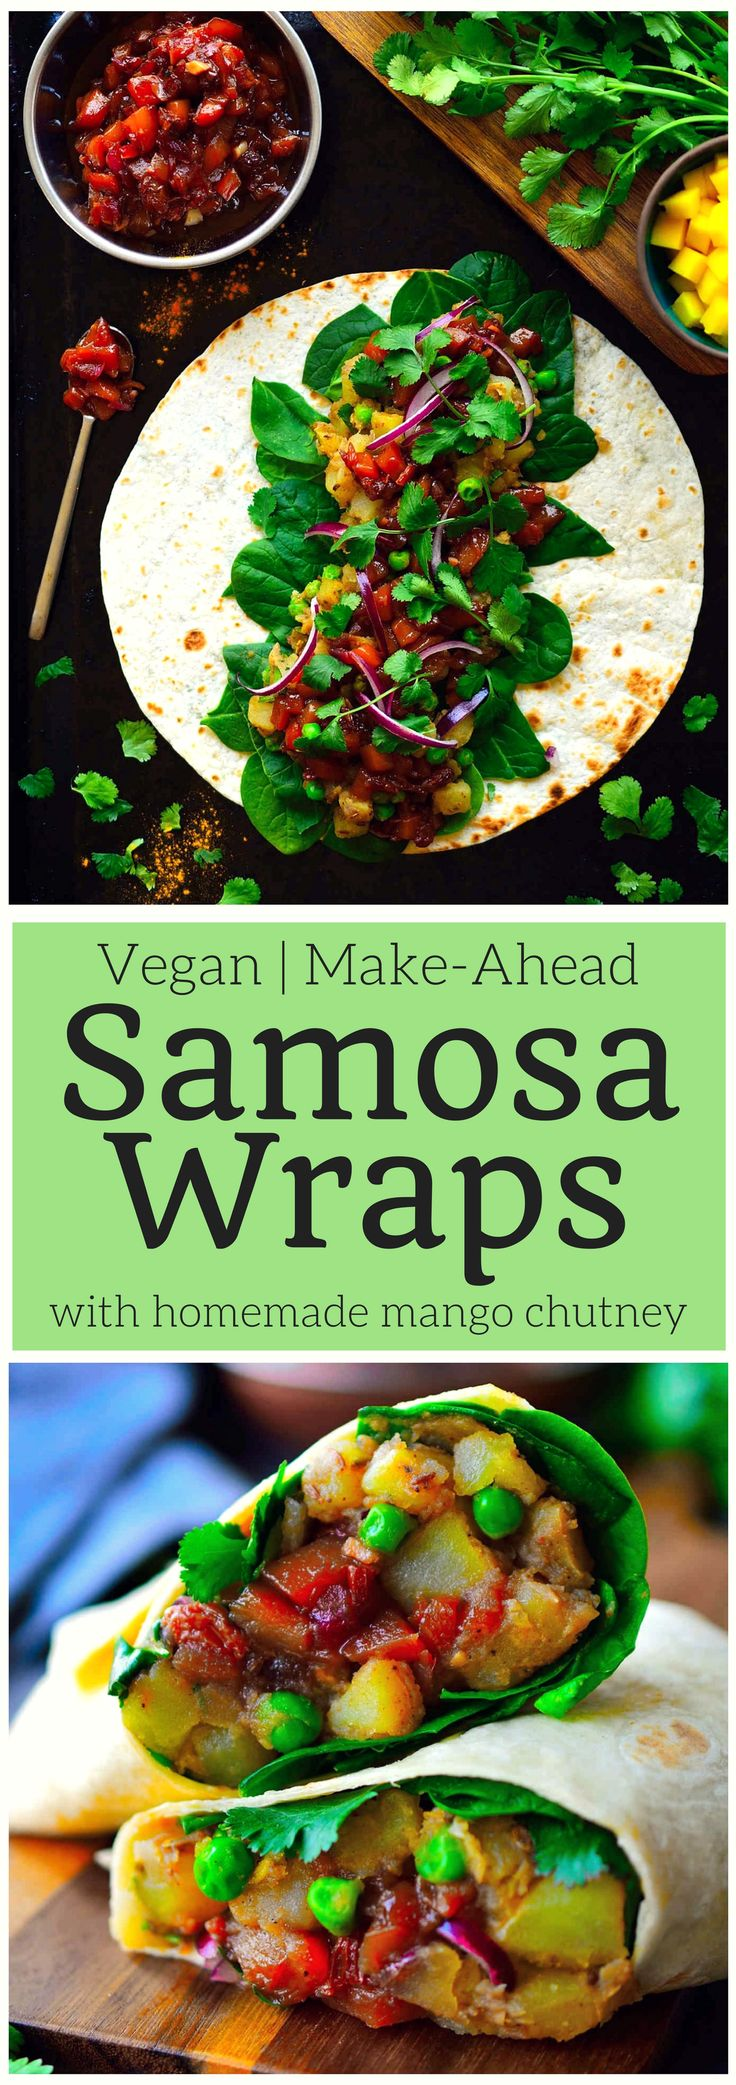 These vegan samosa wraps are super easy to put together with spiced potatoes and peas, crisp greens, spicy red onion and a simple homemade mango chutney. Make these samosa wraps ahead and freeze them for a quick lunch (or dinner) throughout the week.